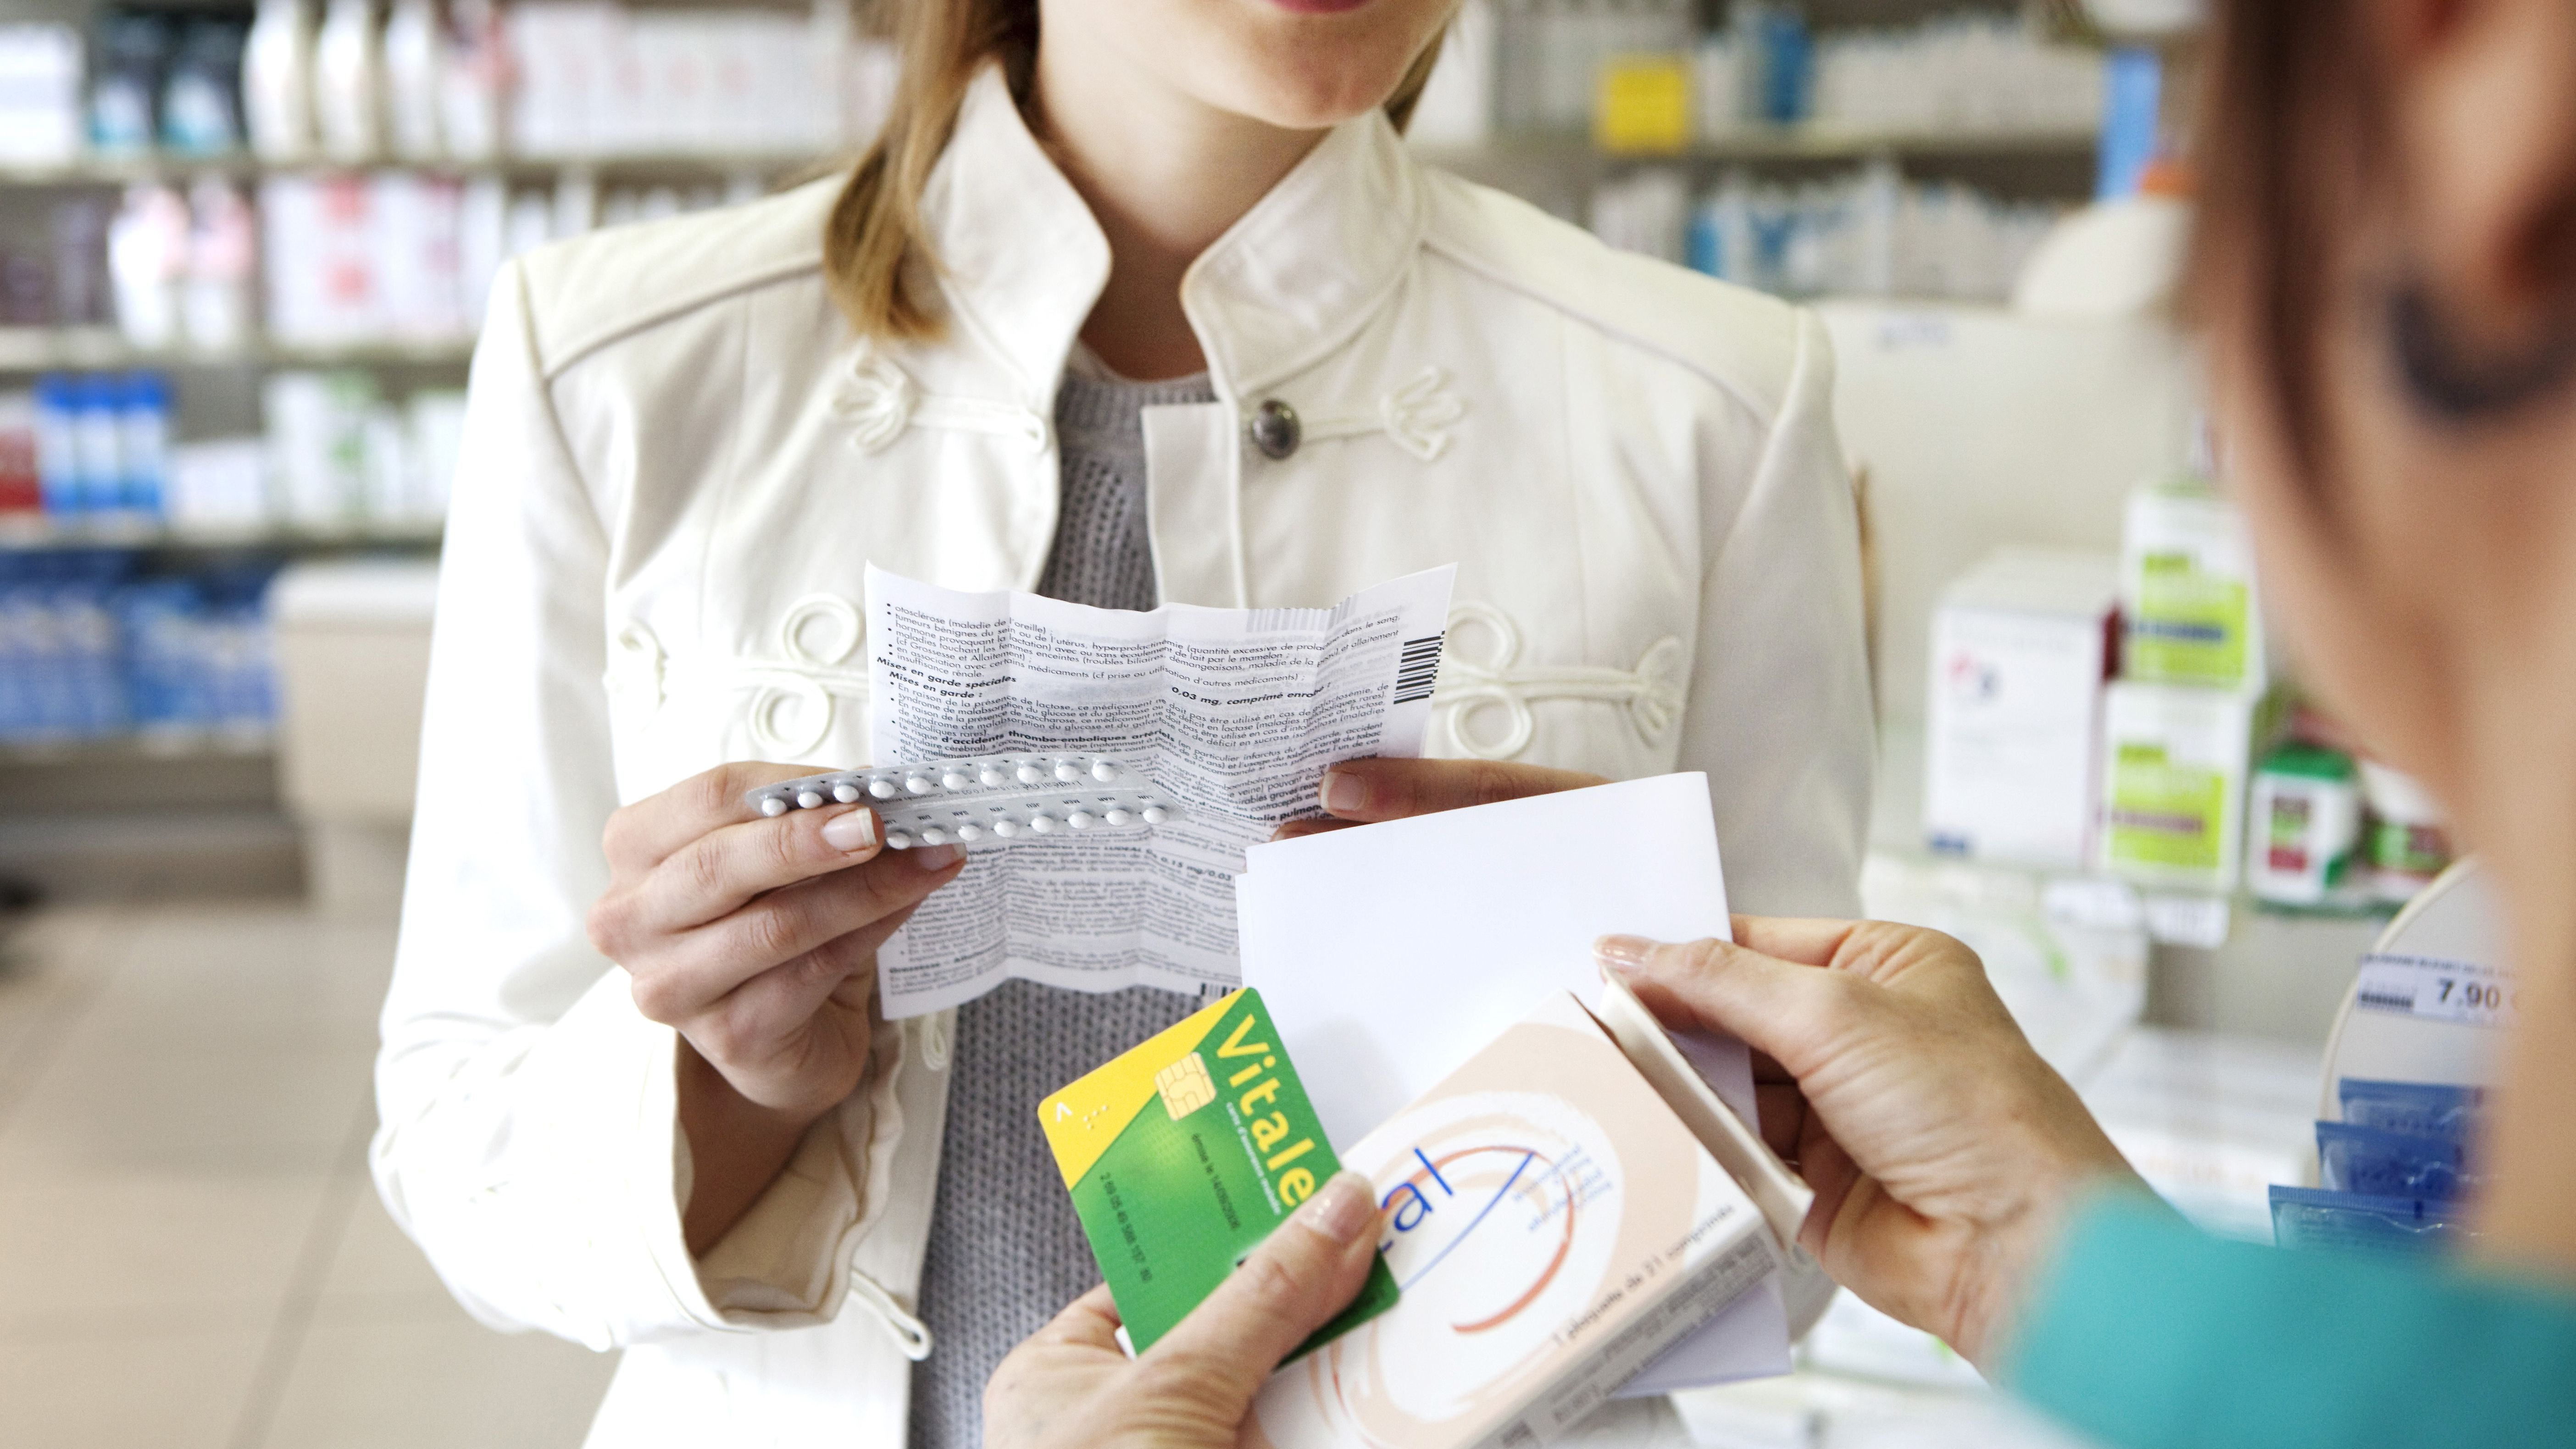 The Affordable Care Act and Contraceptive Benefits